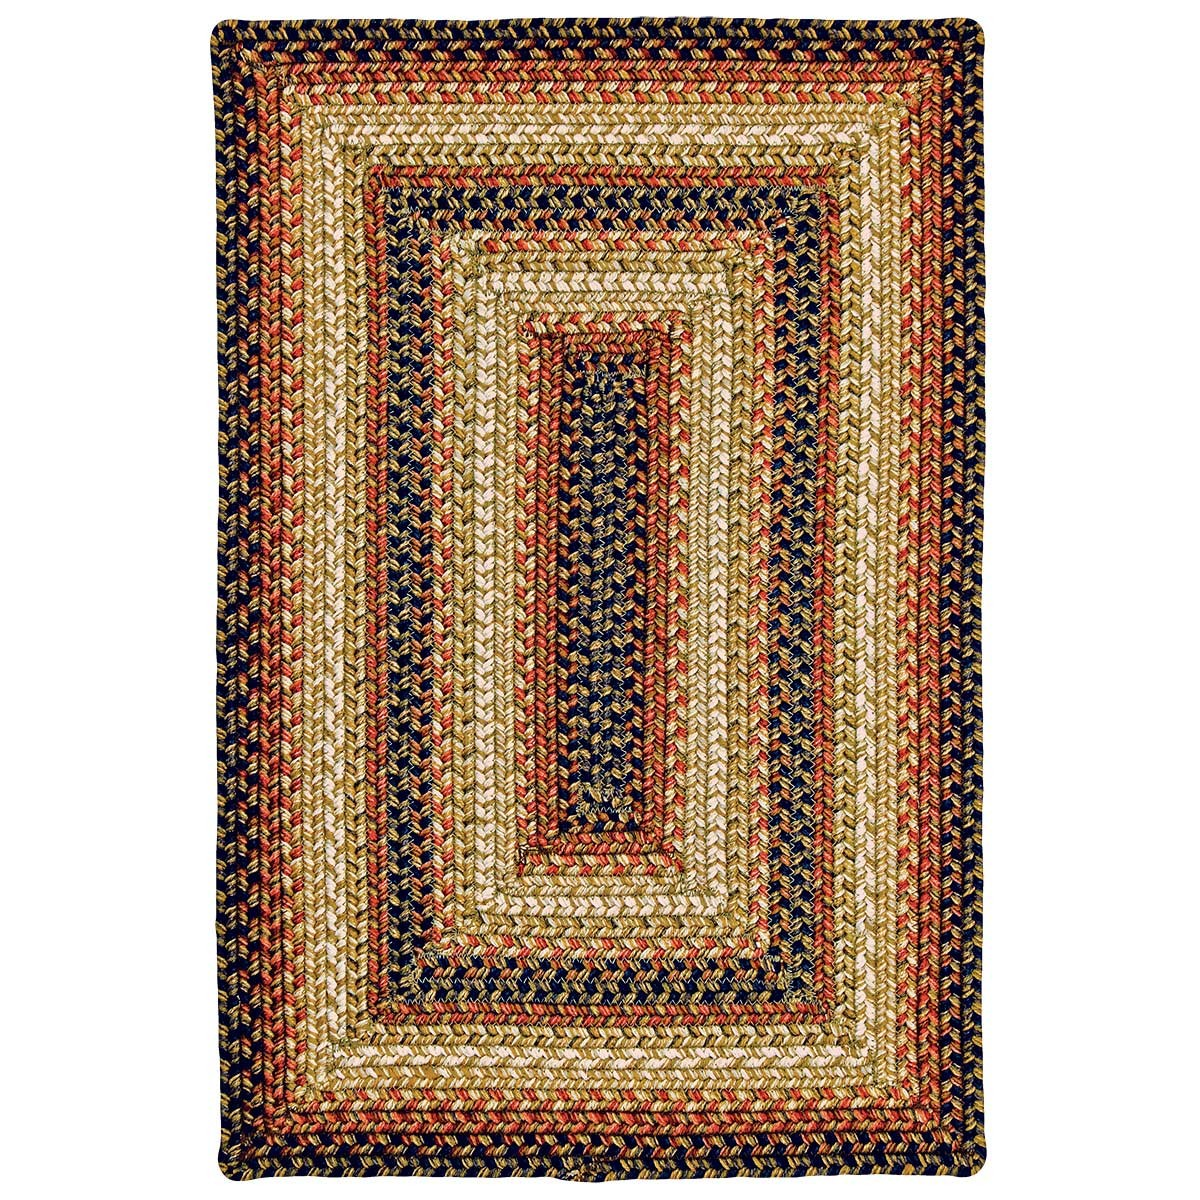 Buy San Antonio Black - Burdundy Ultra Wool Braided Rugs ...